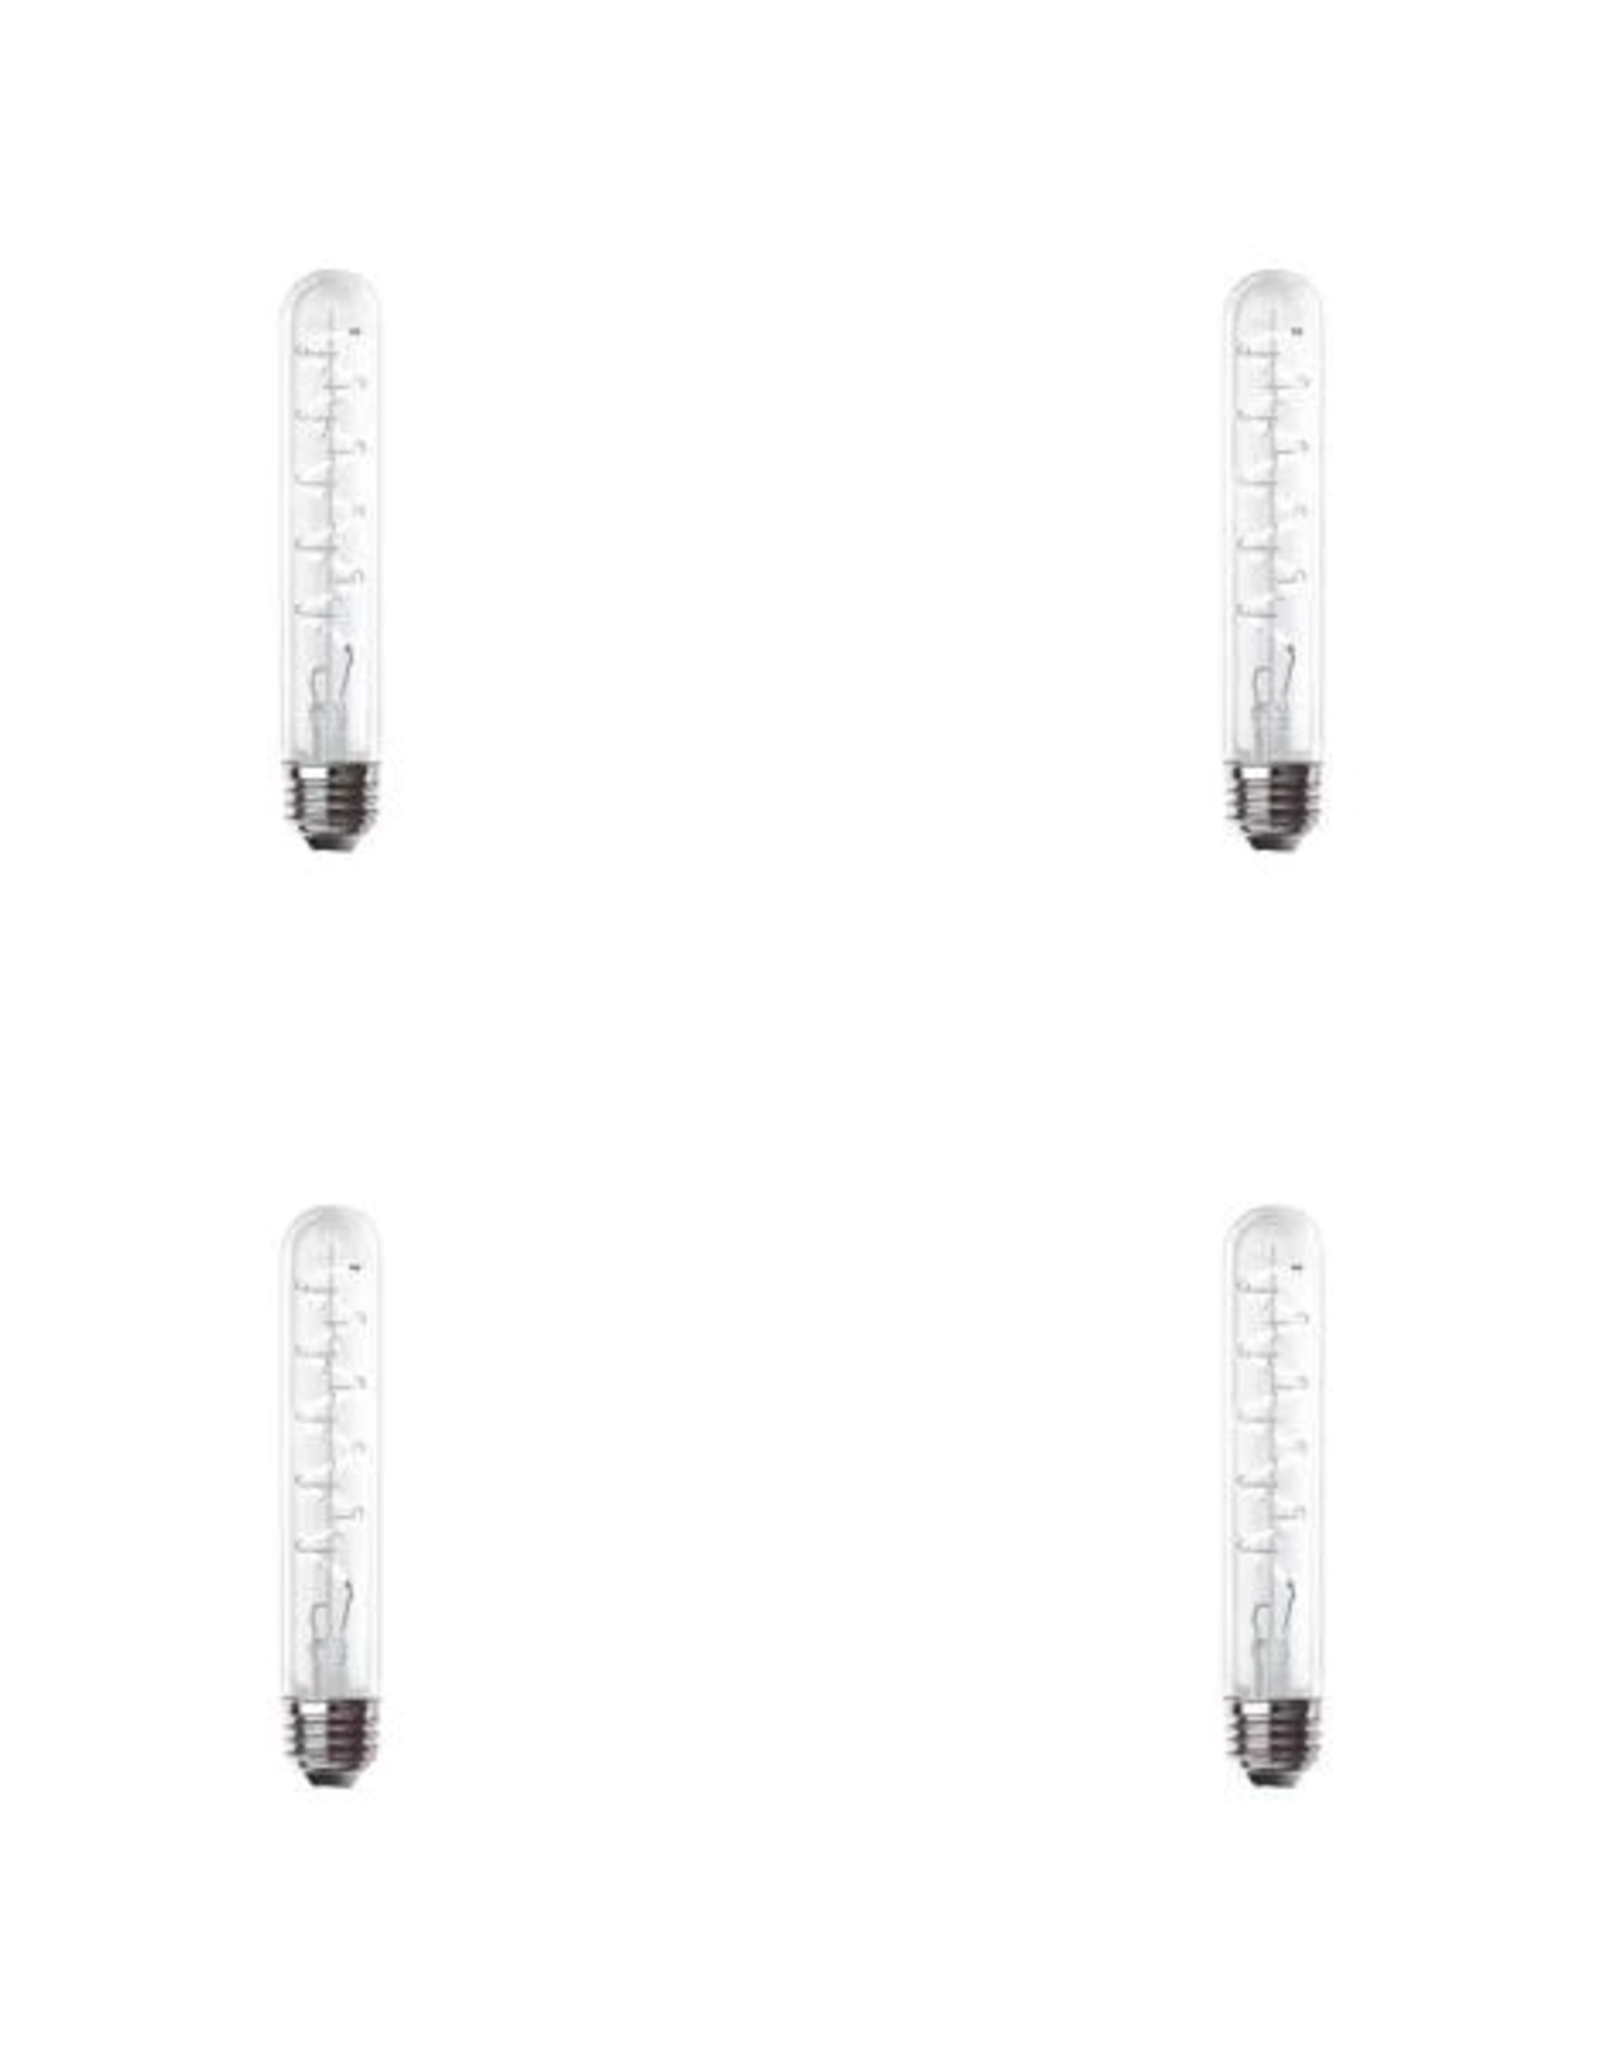 Feit Electric 40-Watt Equivalent T10 Dimmable LED Clear Glass Vintage Edison Large Light Bulb With Spiral Filament Daylight (4-Pack)